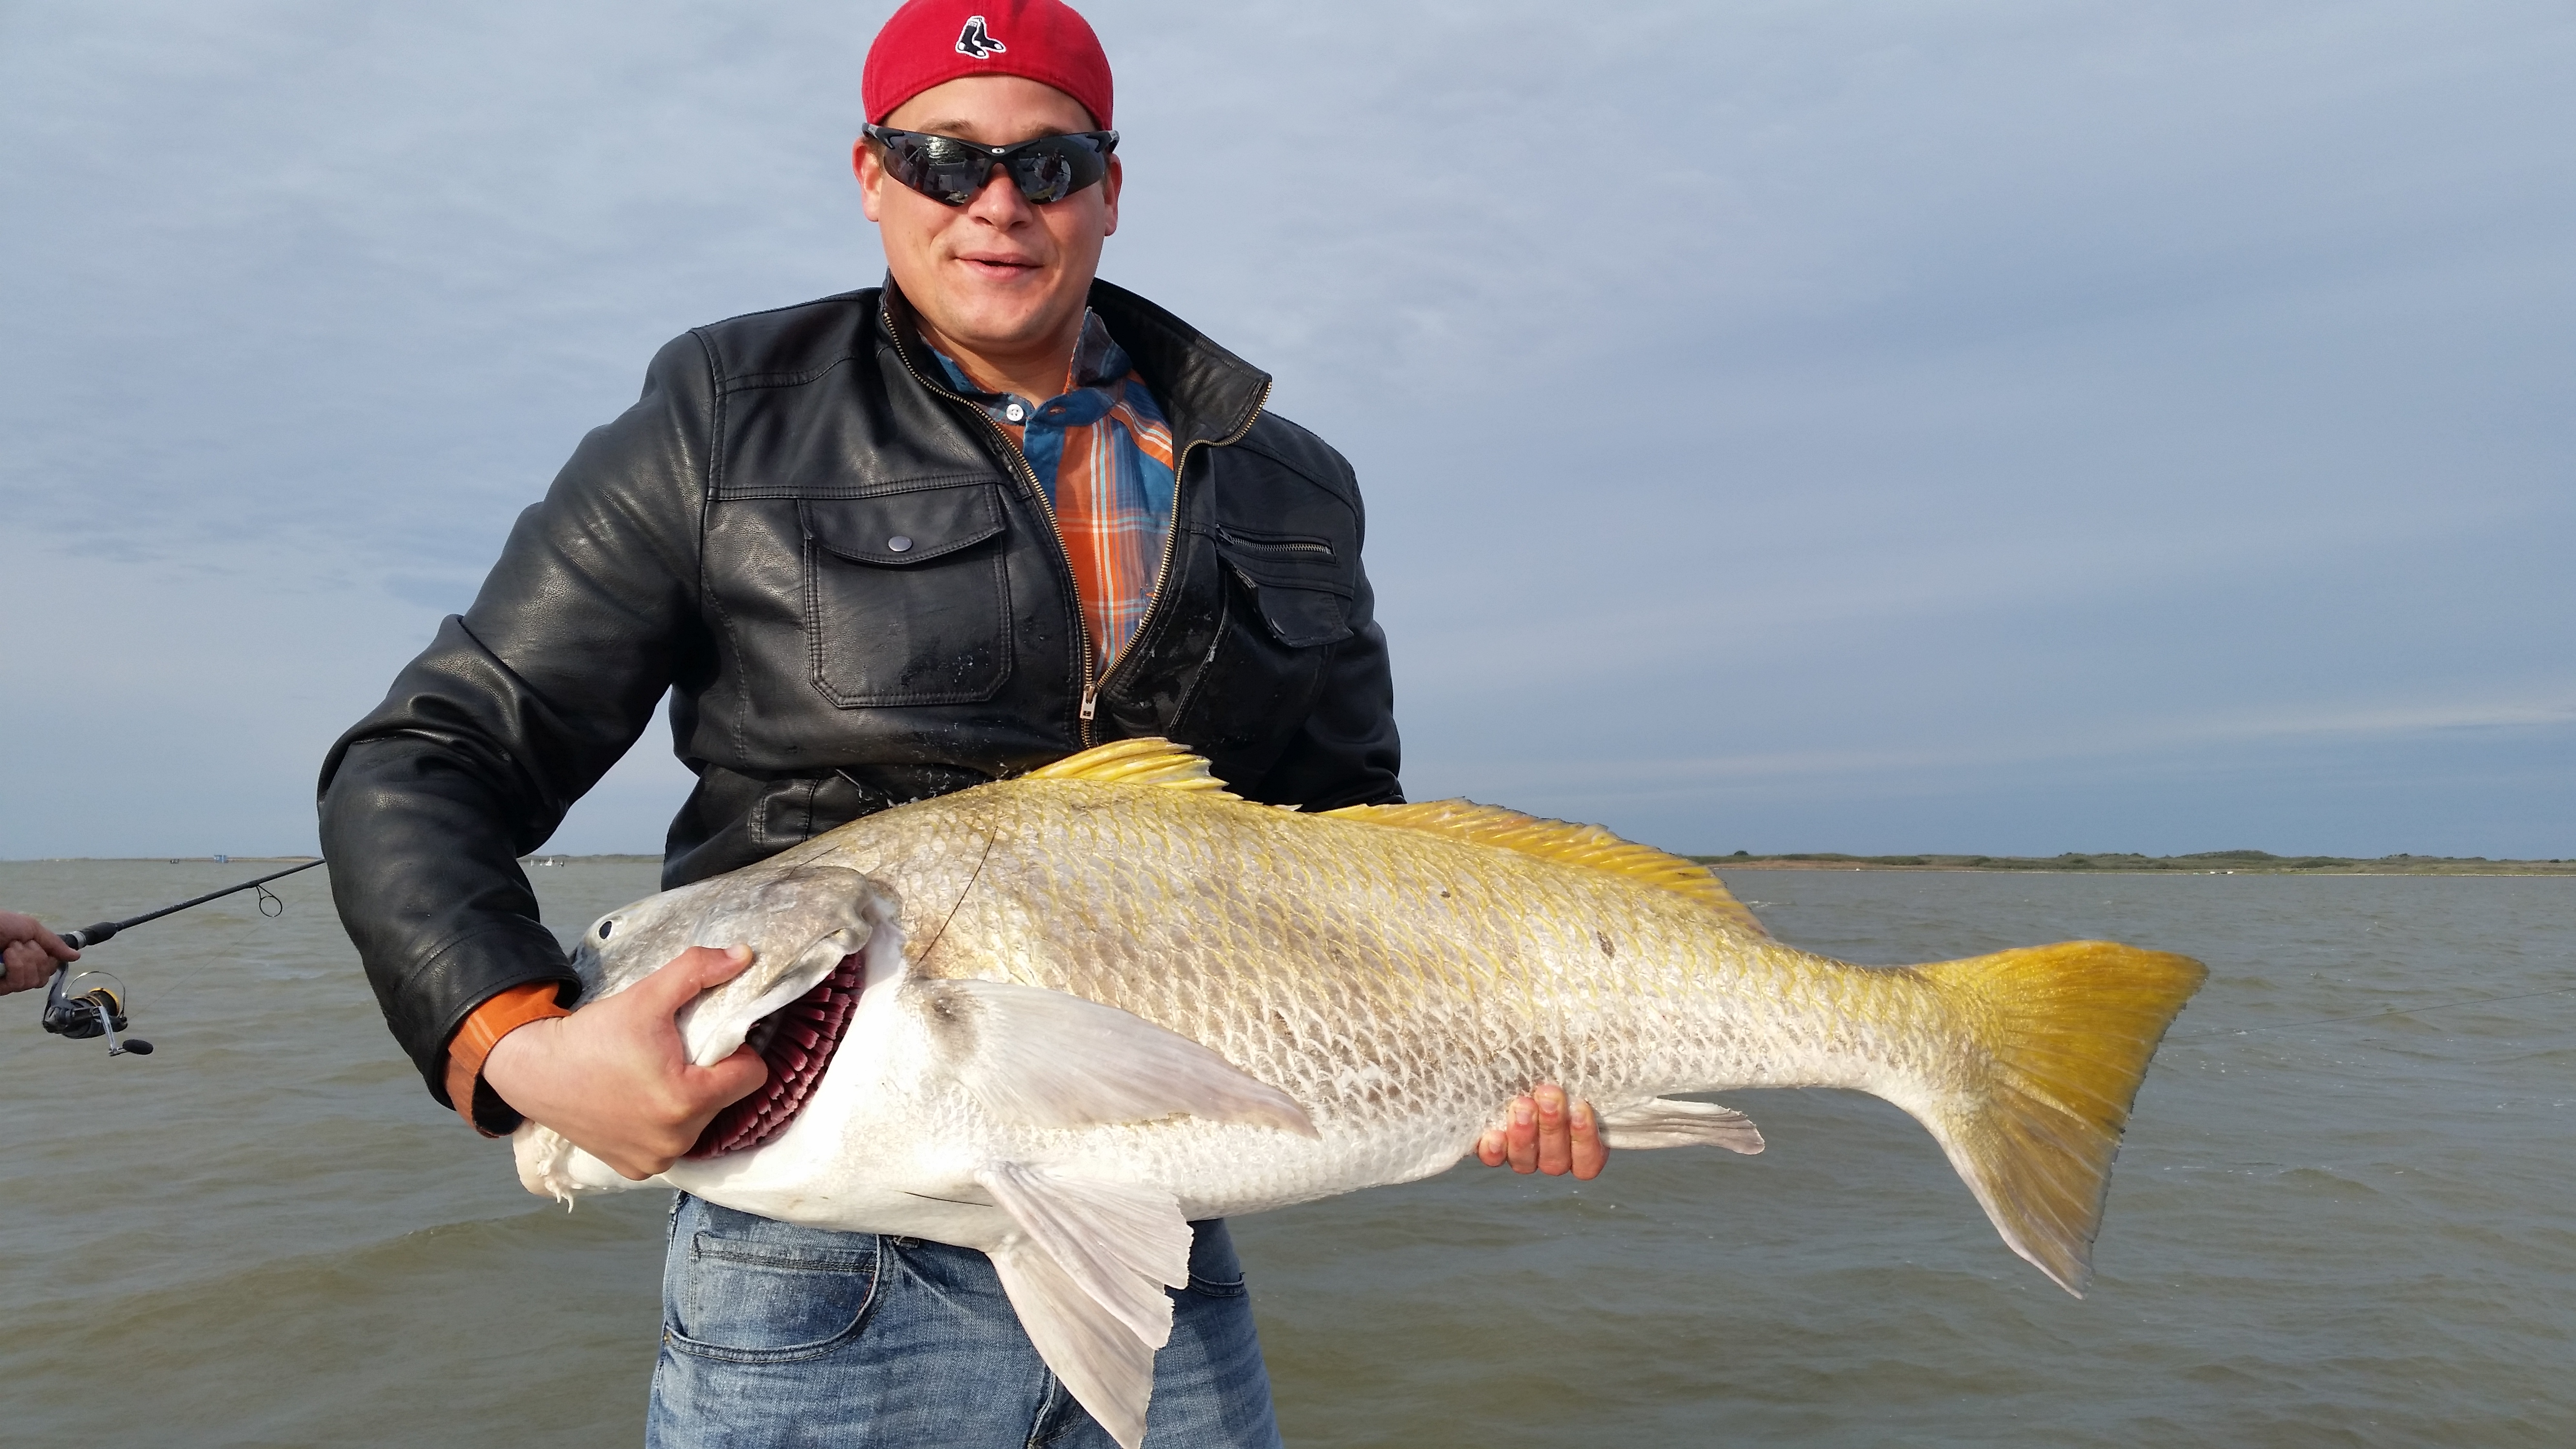 Fish on guide service in corpus christi tx whitepages for Corpus christi fishing guides